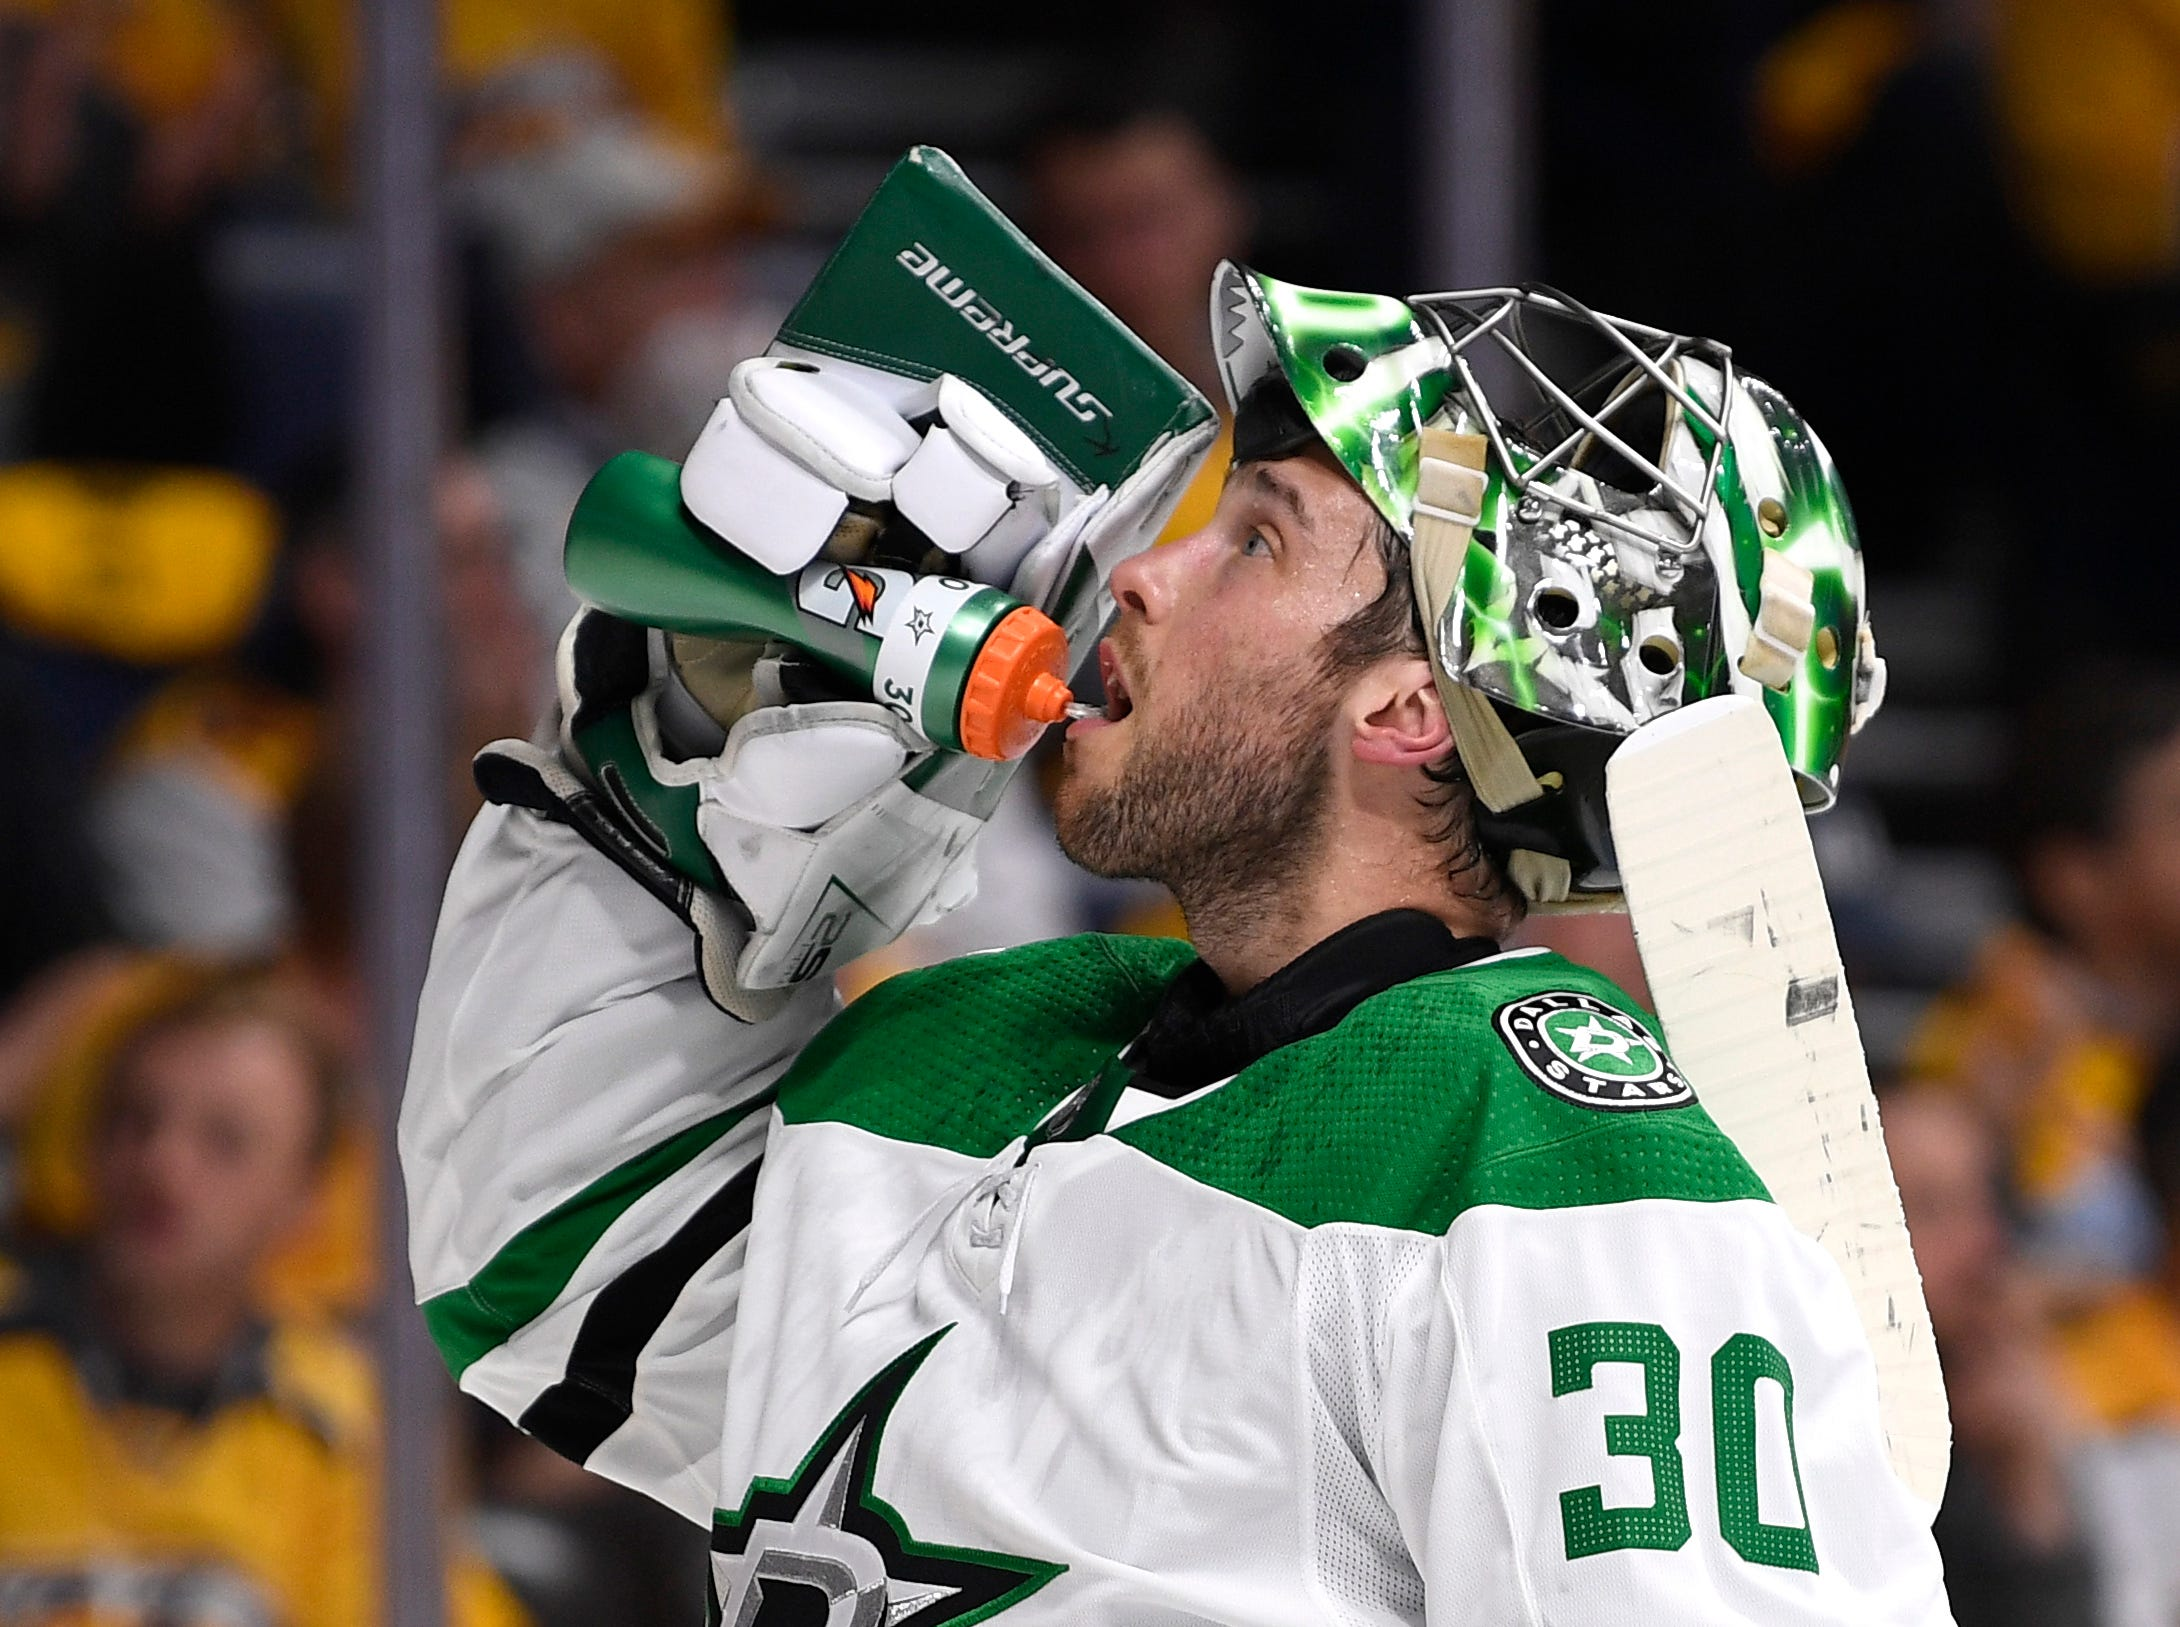 Dallas Stars goaltender Ben Bishop (30) takes a drink during a break in the first period of the divisional semifinal game at Bridgestone Arena in Nashville, Tenn., Wednesday, April 10, 2019.